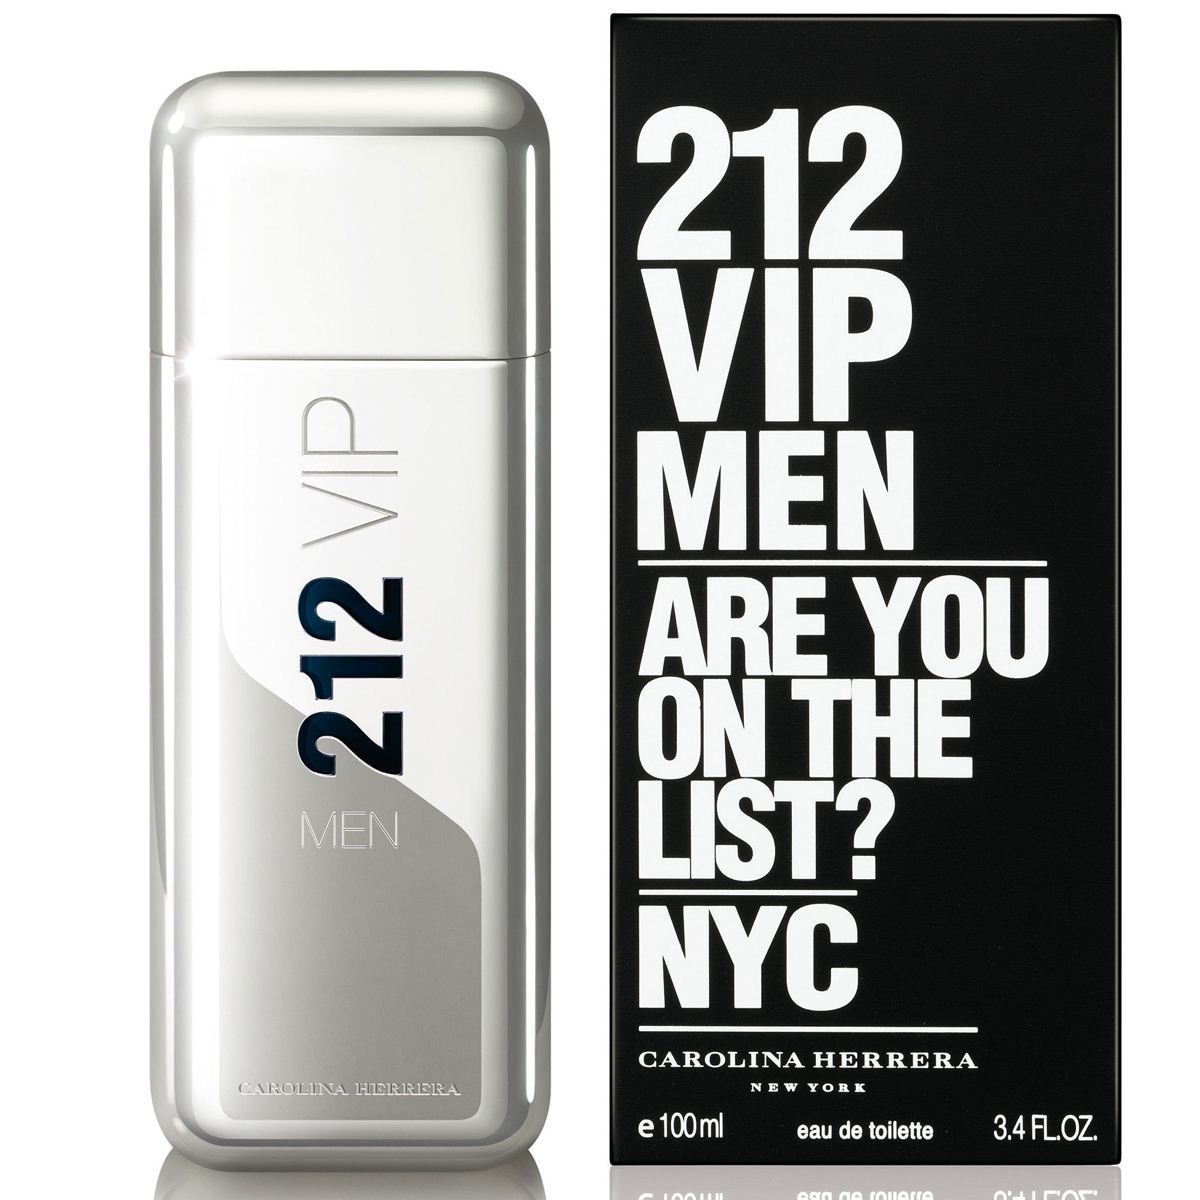 Perfume oil inspired by 212 VIP Men